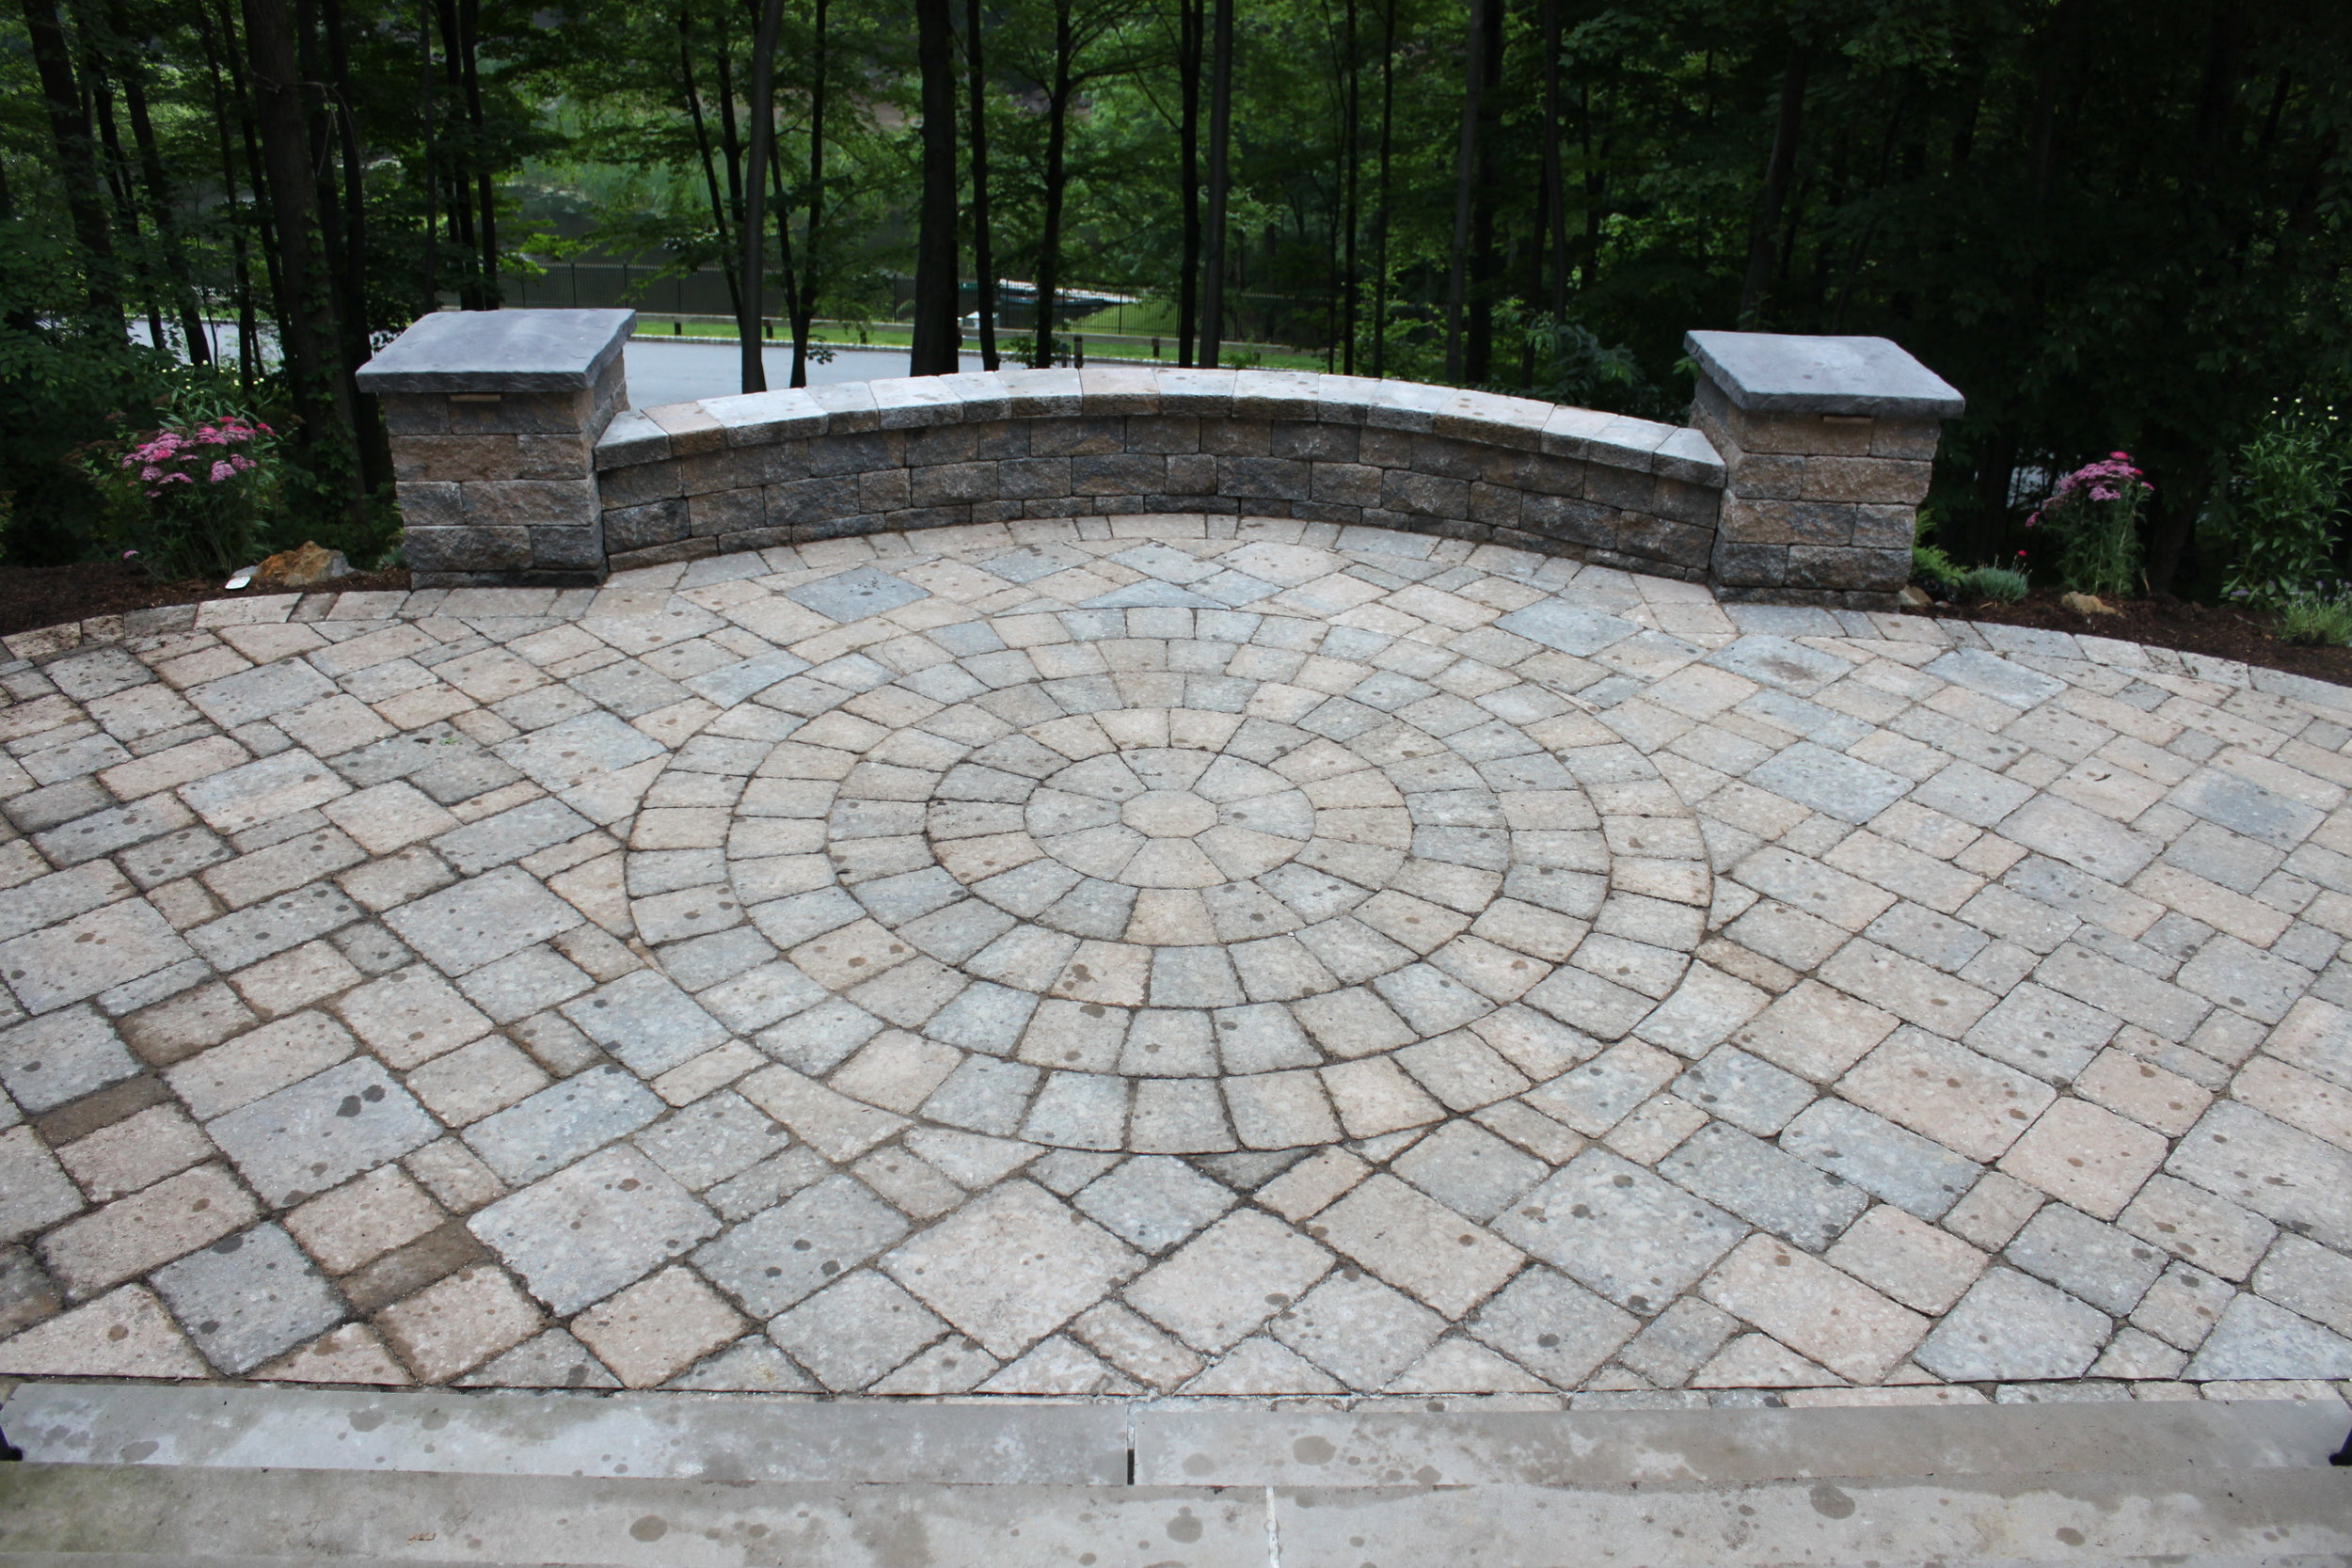 A view of a paver stone walkway from the front steps of a home. The walkway has a circular pattern in the center, and has a low wall on one side.